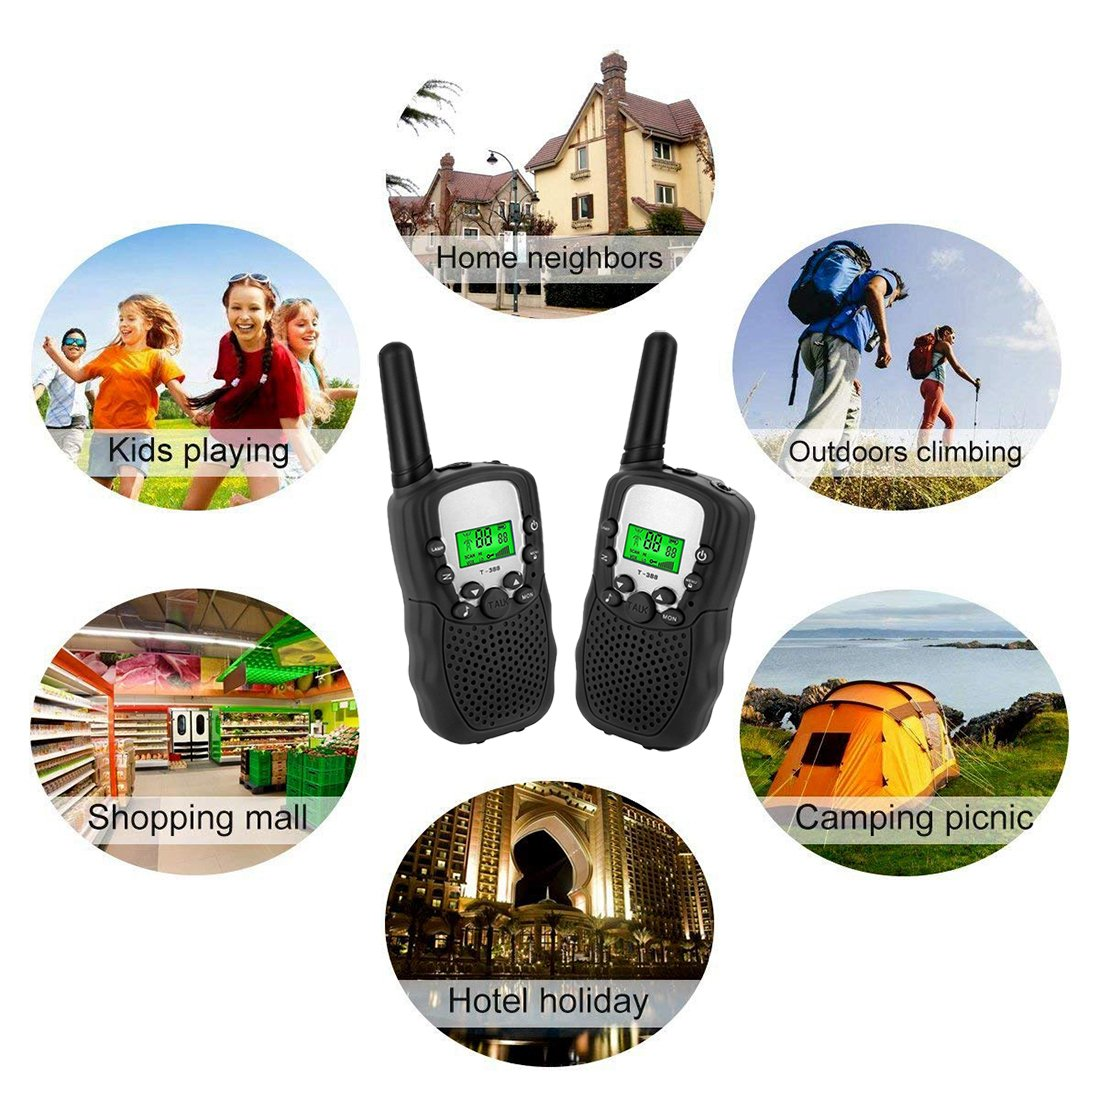 Joyjam Toys for 3-12 Year Old Boys Kids Walkie Talkies 2 Miles Long Range Kids Outdoor Games Birthday Gifts for 5-8 Year Old Boys Black - 1 Pair by Joyjam (Image #7)